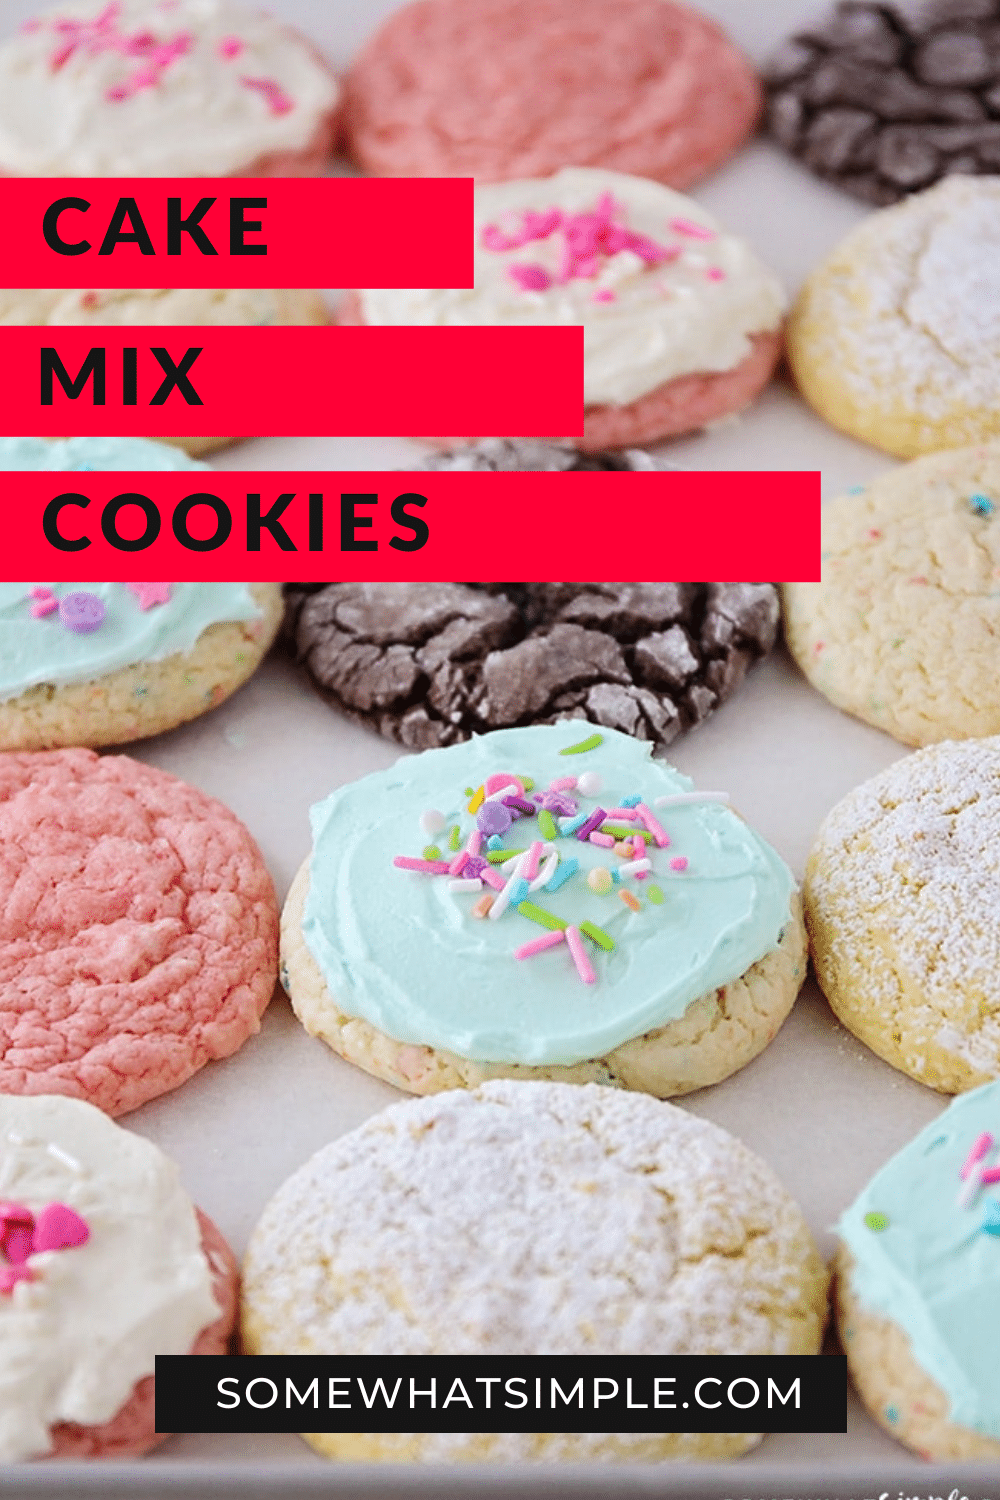 Cake mix cookies are soft and chewy and super delicious! Plus, they only require 3 ingredients making them essentially a no-fuss fantastic treat. This cookie recipe is so easy, it'll look and taste like you've been in the kitchen all day but they will only take you minutes to make. With 10 different flavors to choose from, you're going to find one you love! via @somewhatsimple